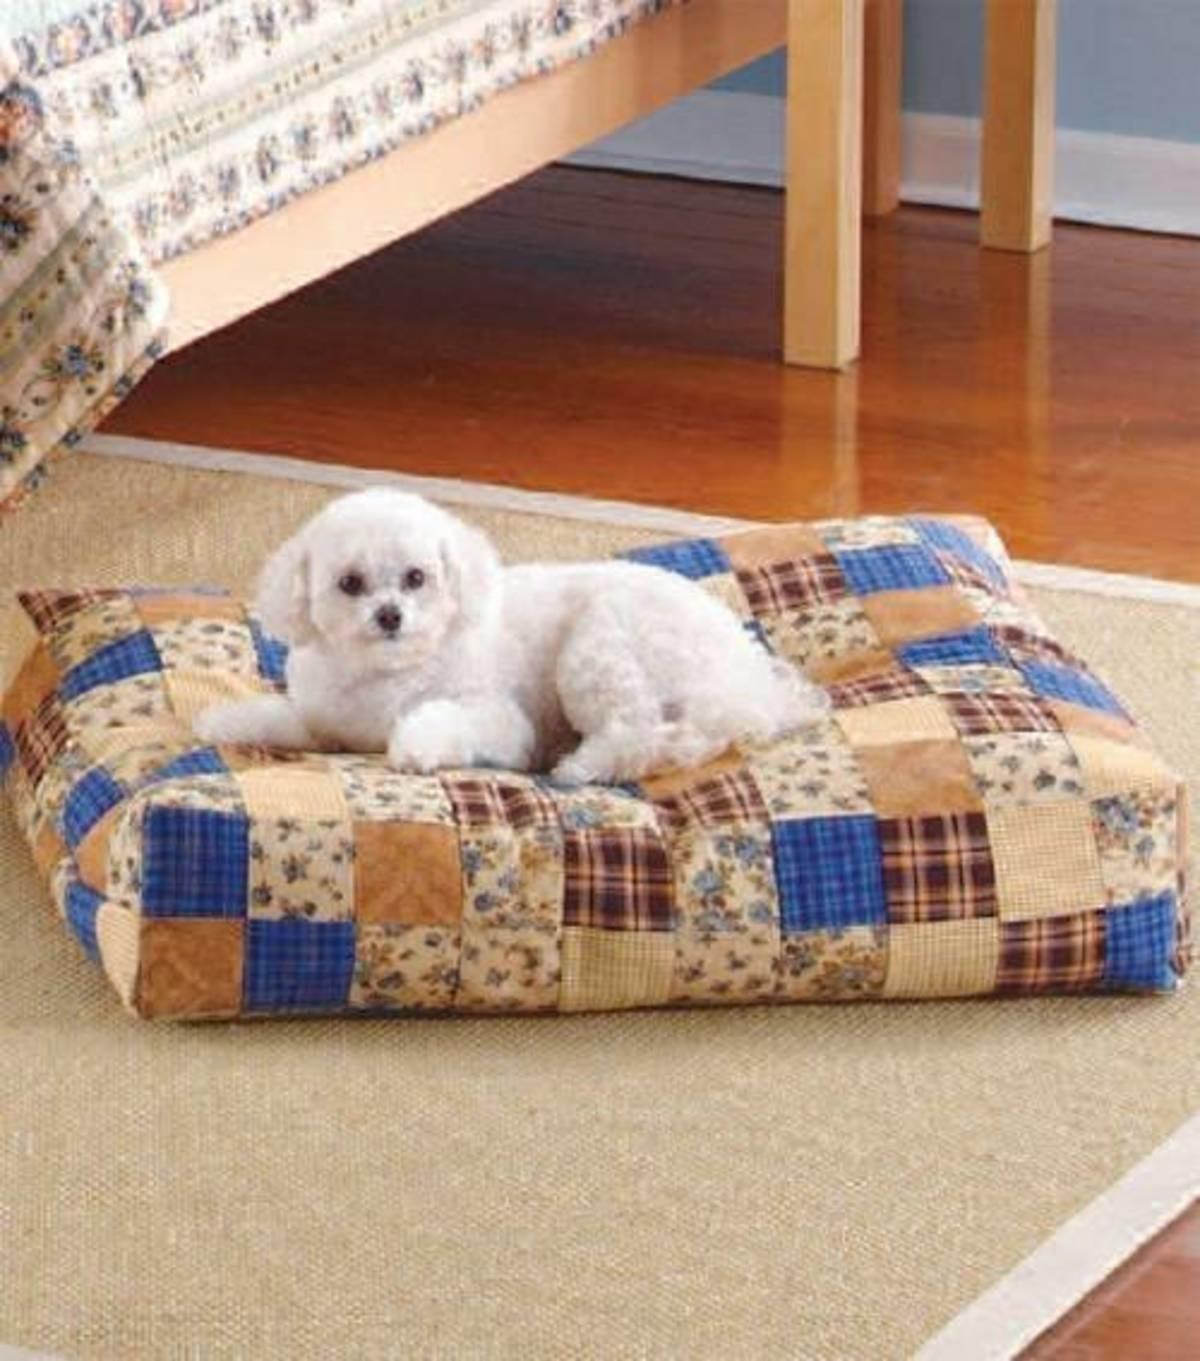 Craftdrawer Crafts Make Bed Your Dog Using